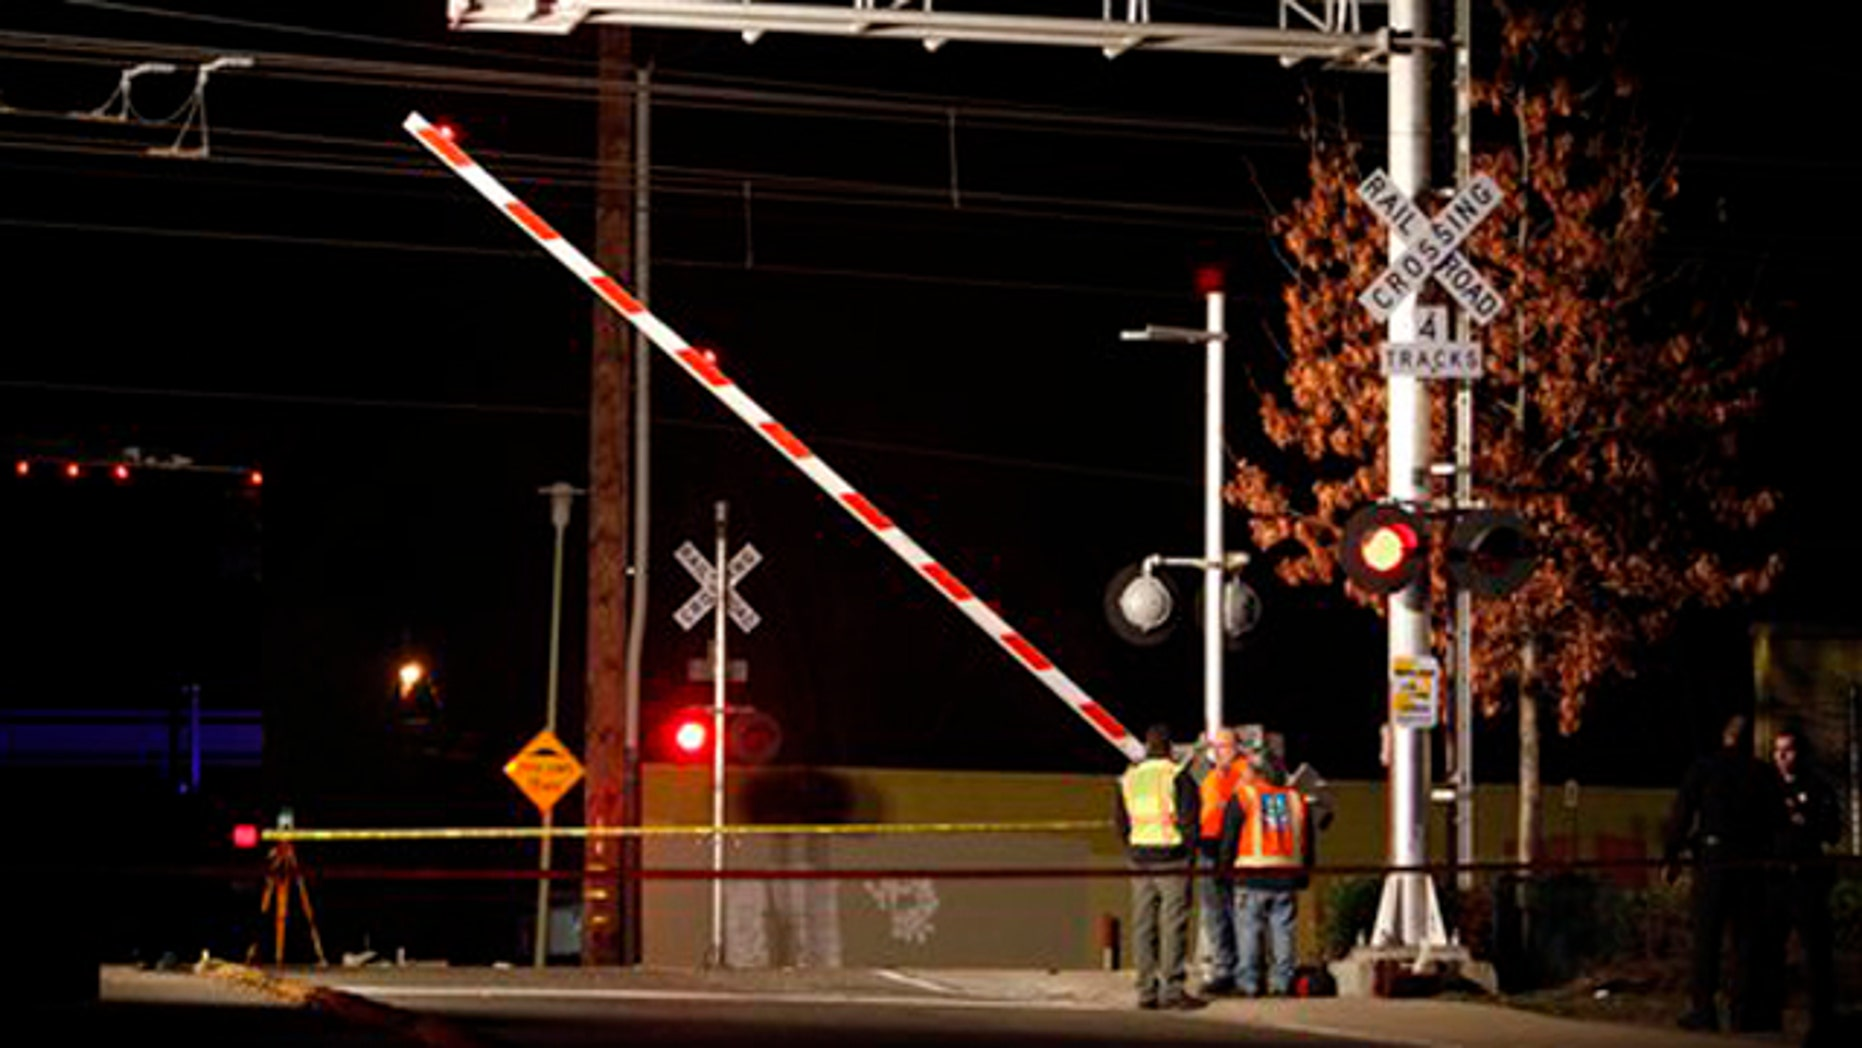 Jan. 28, 2012: Officials test the signals and lights at an intersection where an SUV and Light Rail train collided in Sacramento, Calif.